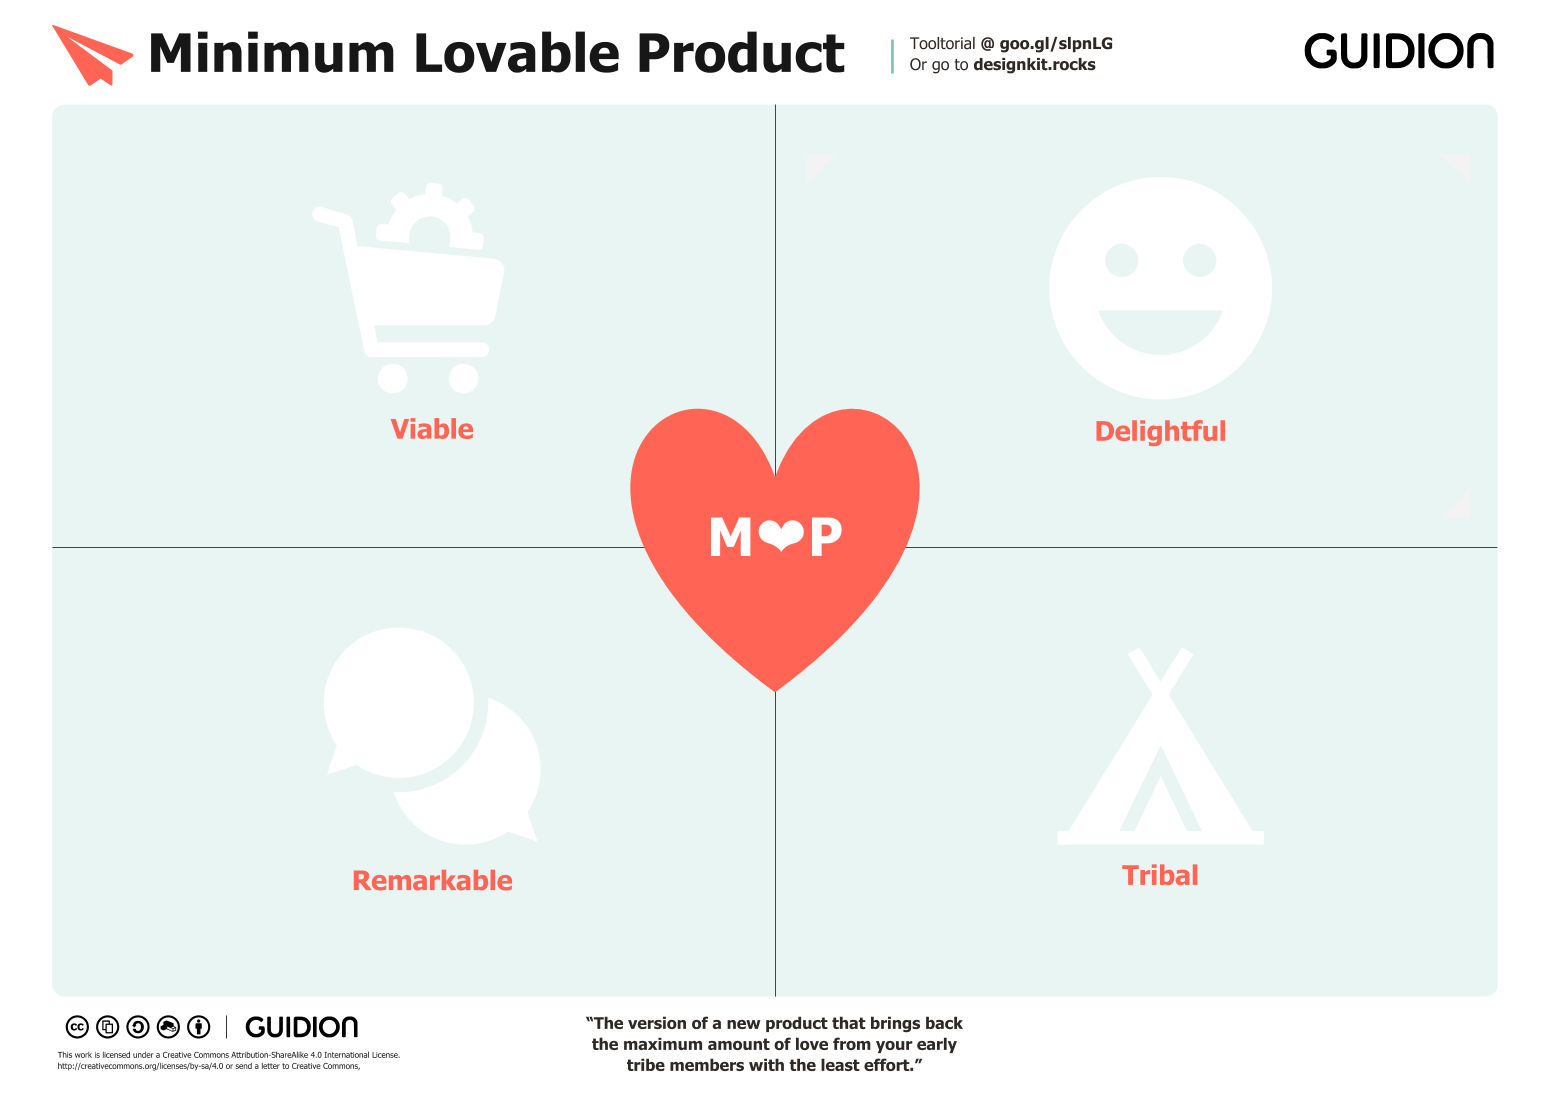 Minimum Lovable Product